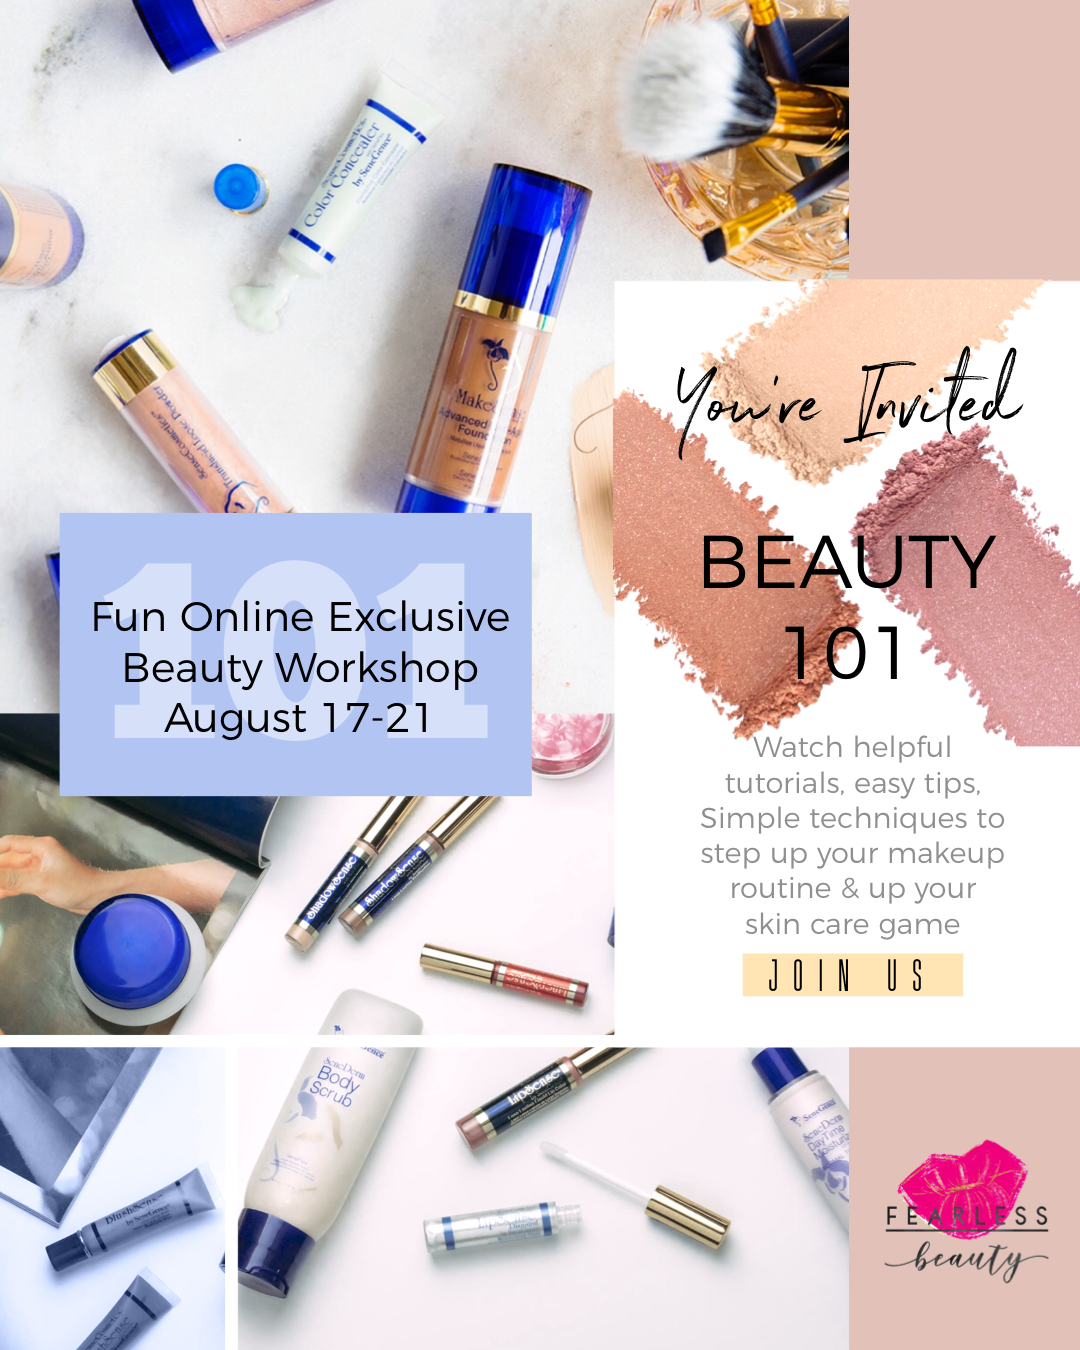 fun exclusive online beauty class to launch your business - Invite your family and friends to the online class so that you can learn together. Beauty tips, how to use our products, and skin care routines.